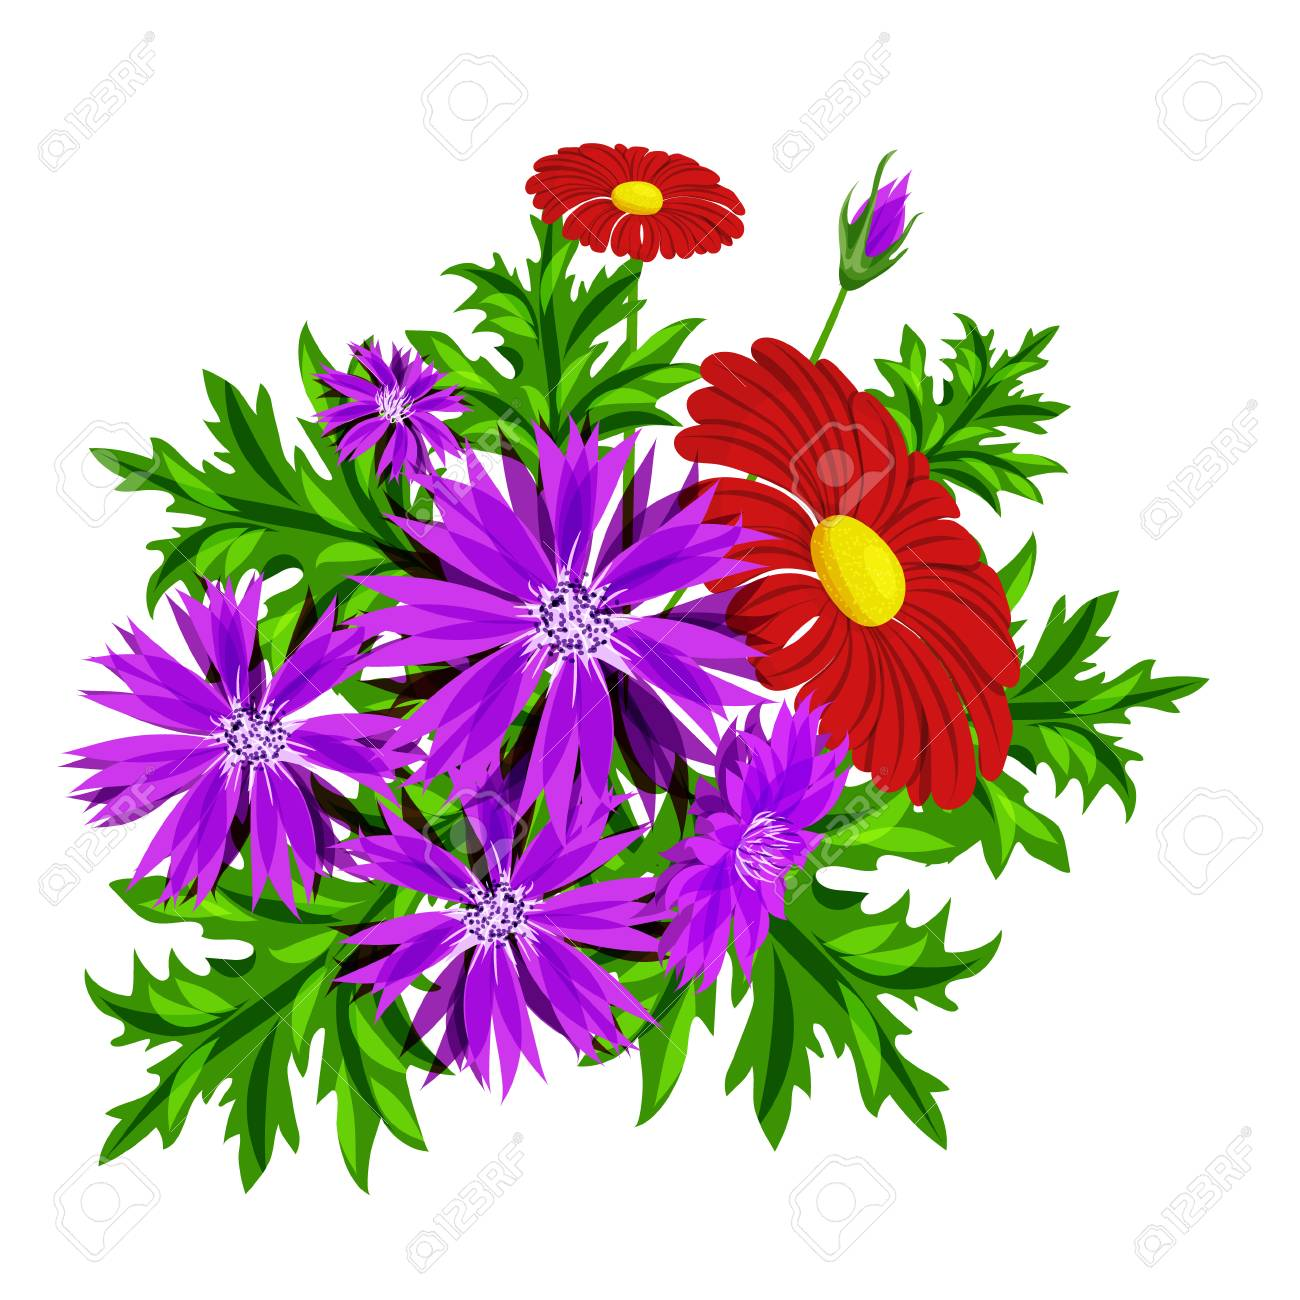 Vector Bouquet Of Flowers For The Design Of Cards Invitations